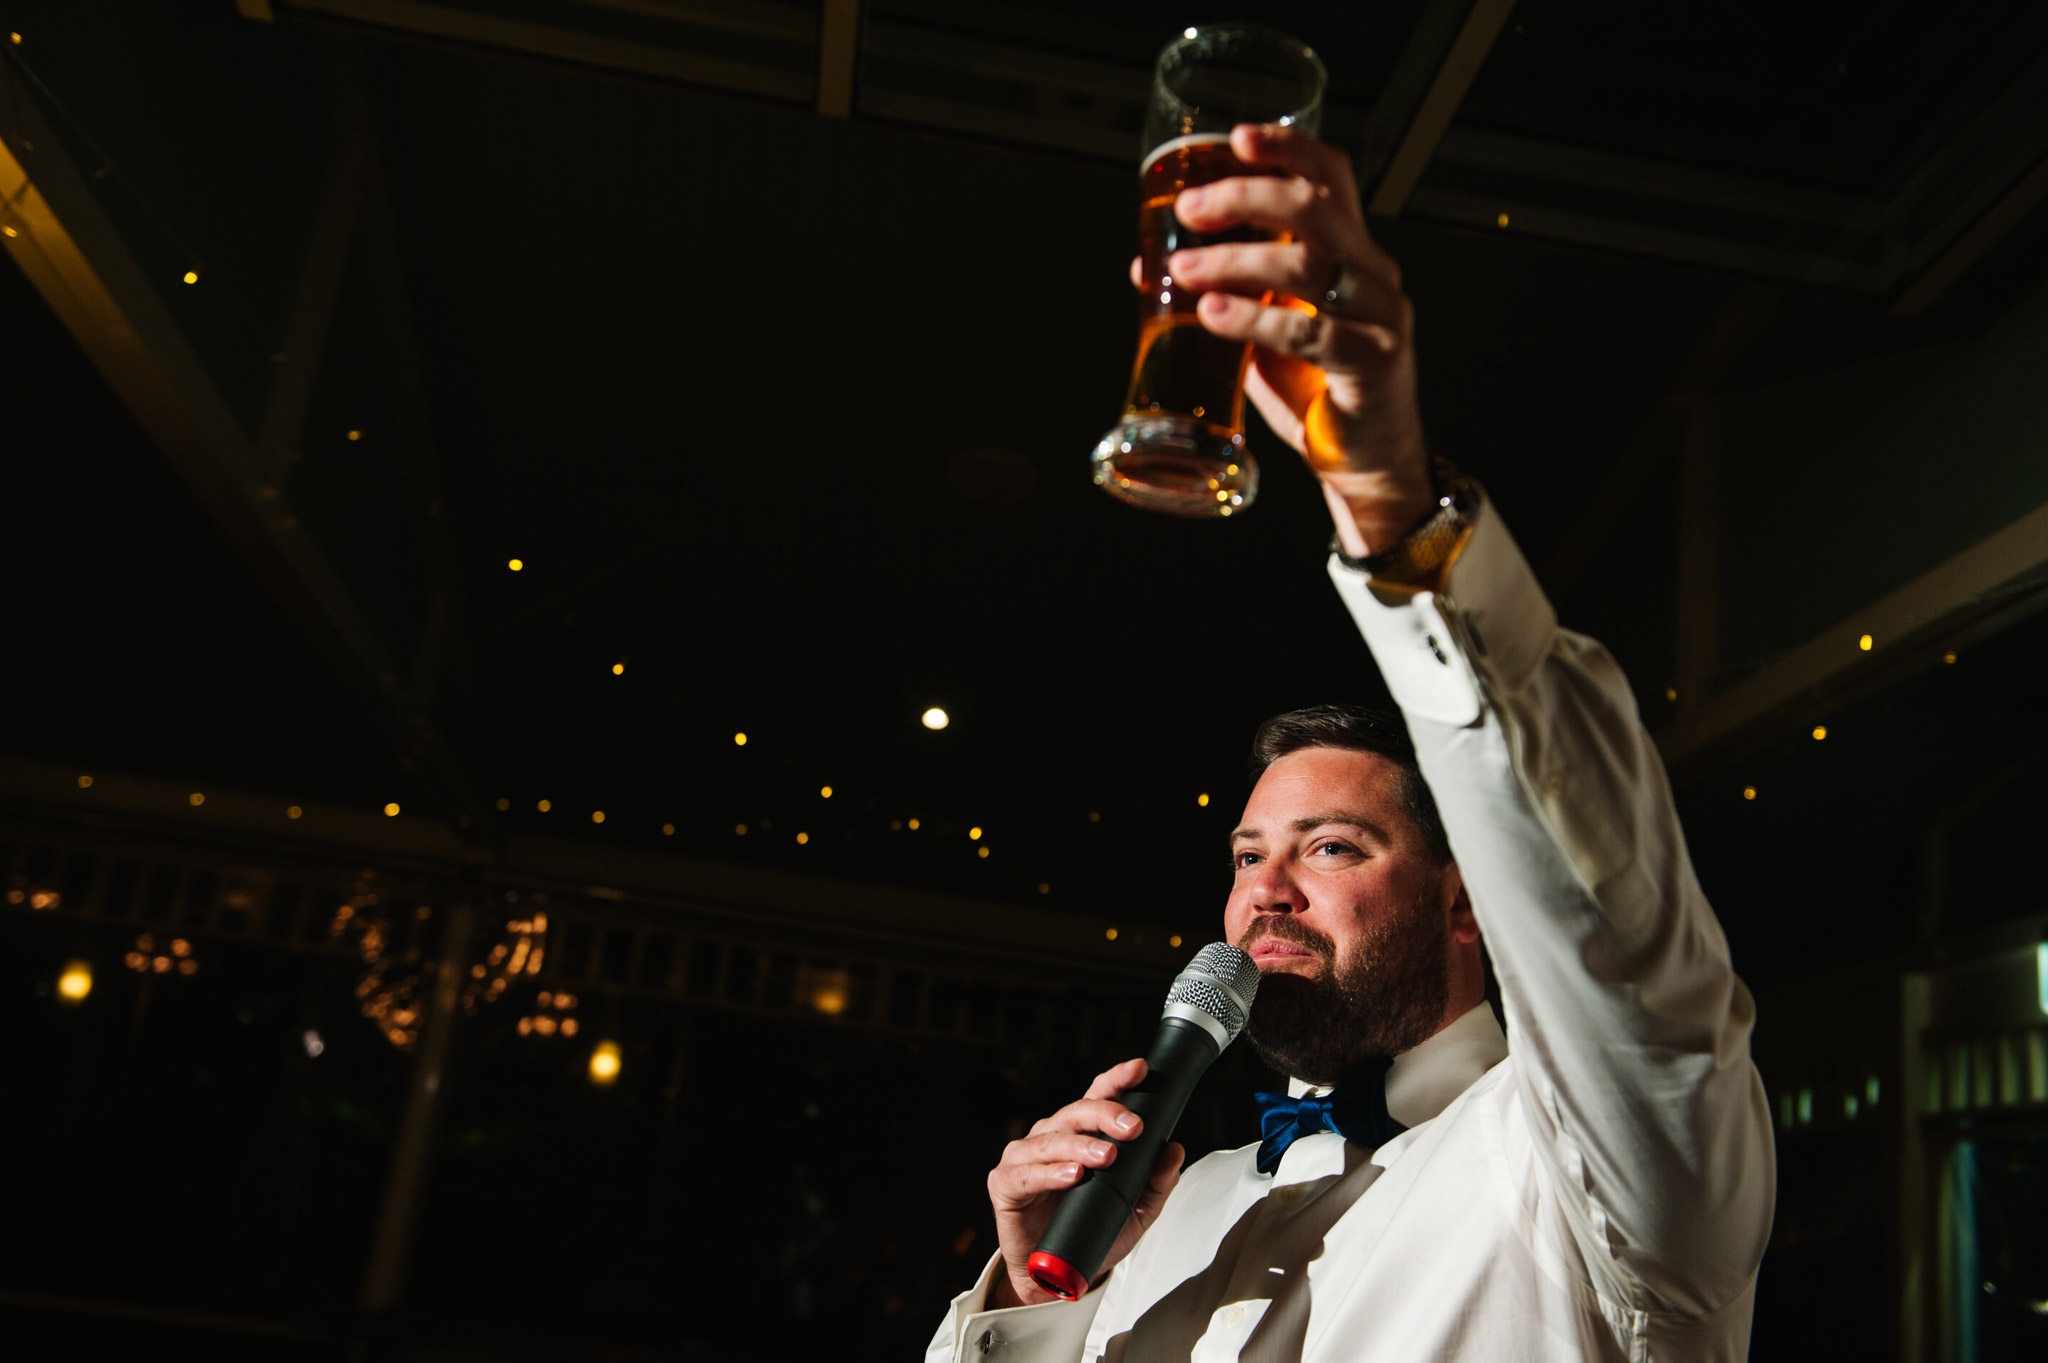 Groom toasting to his new bride